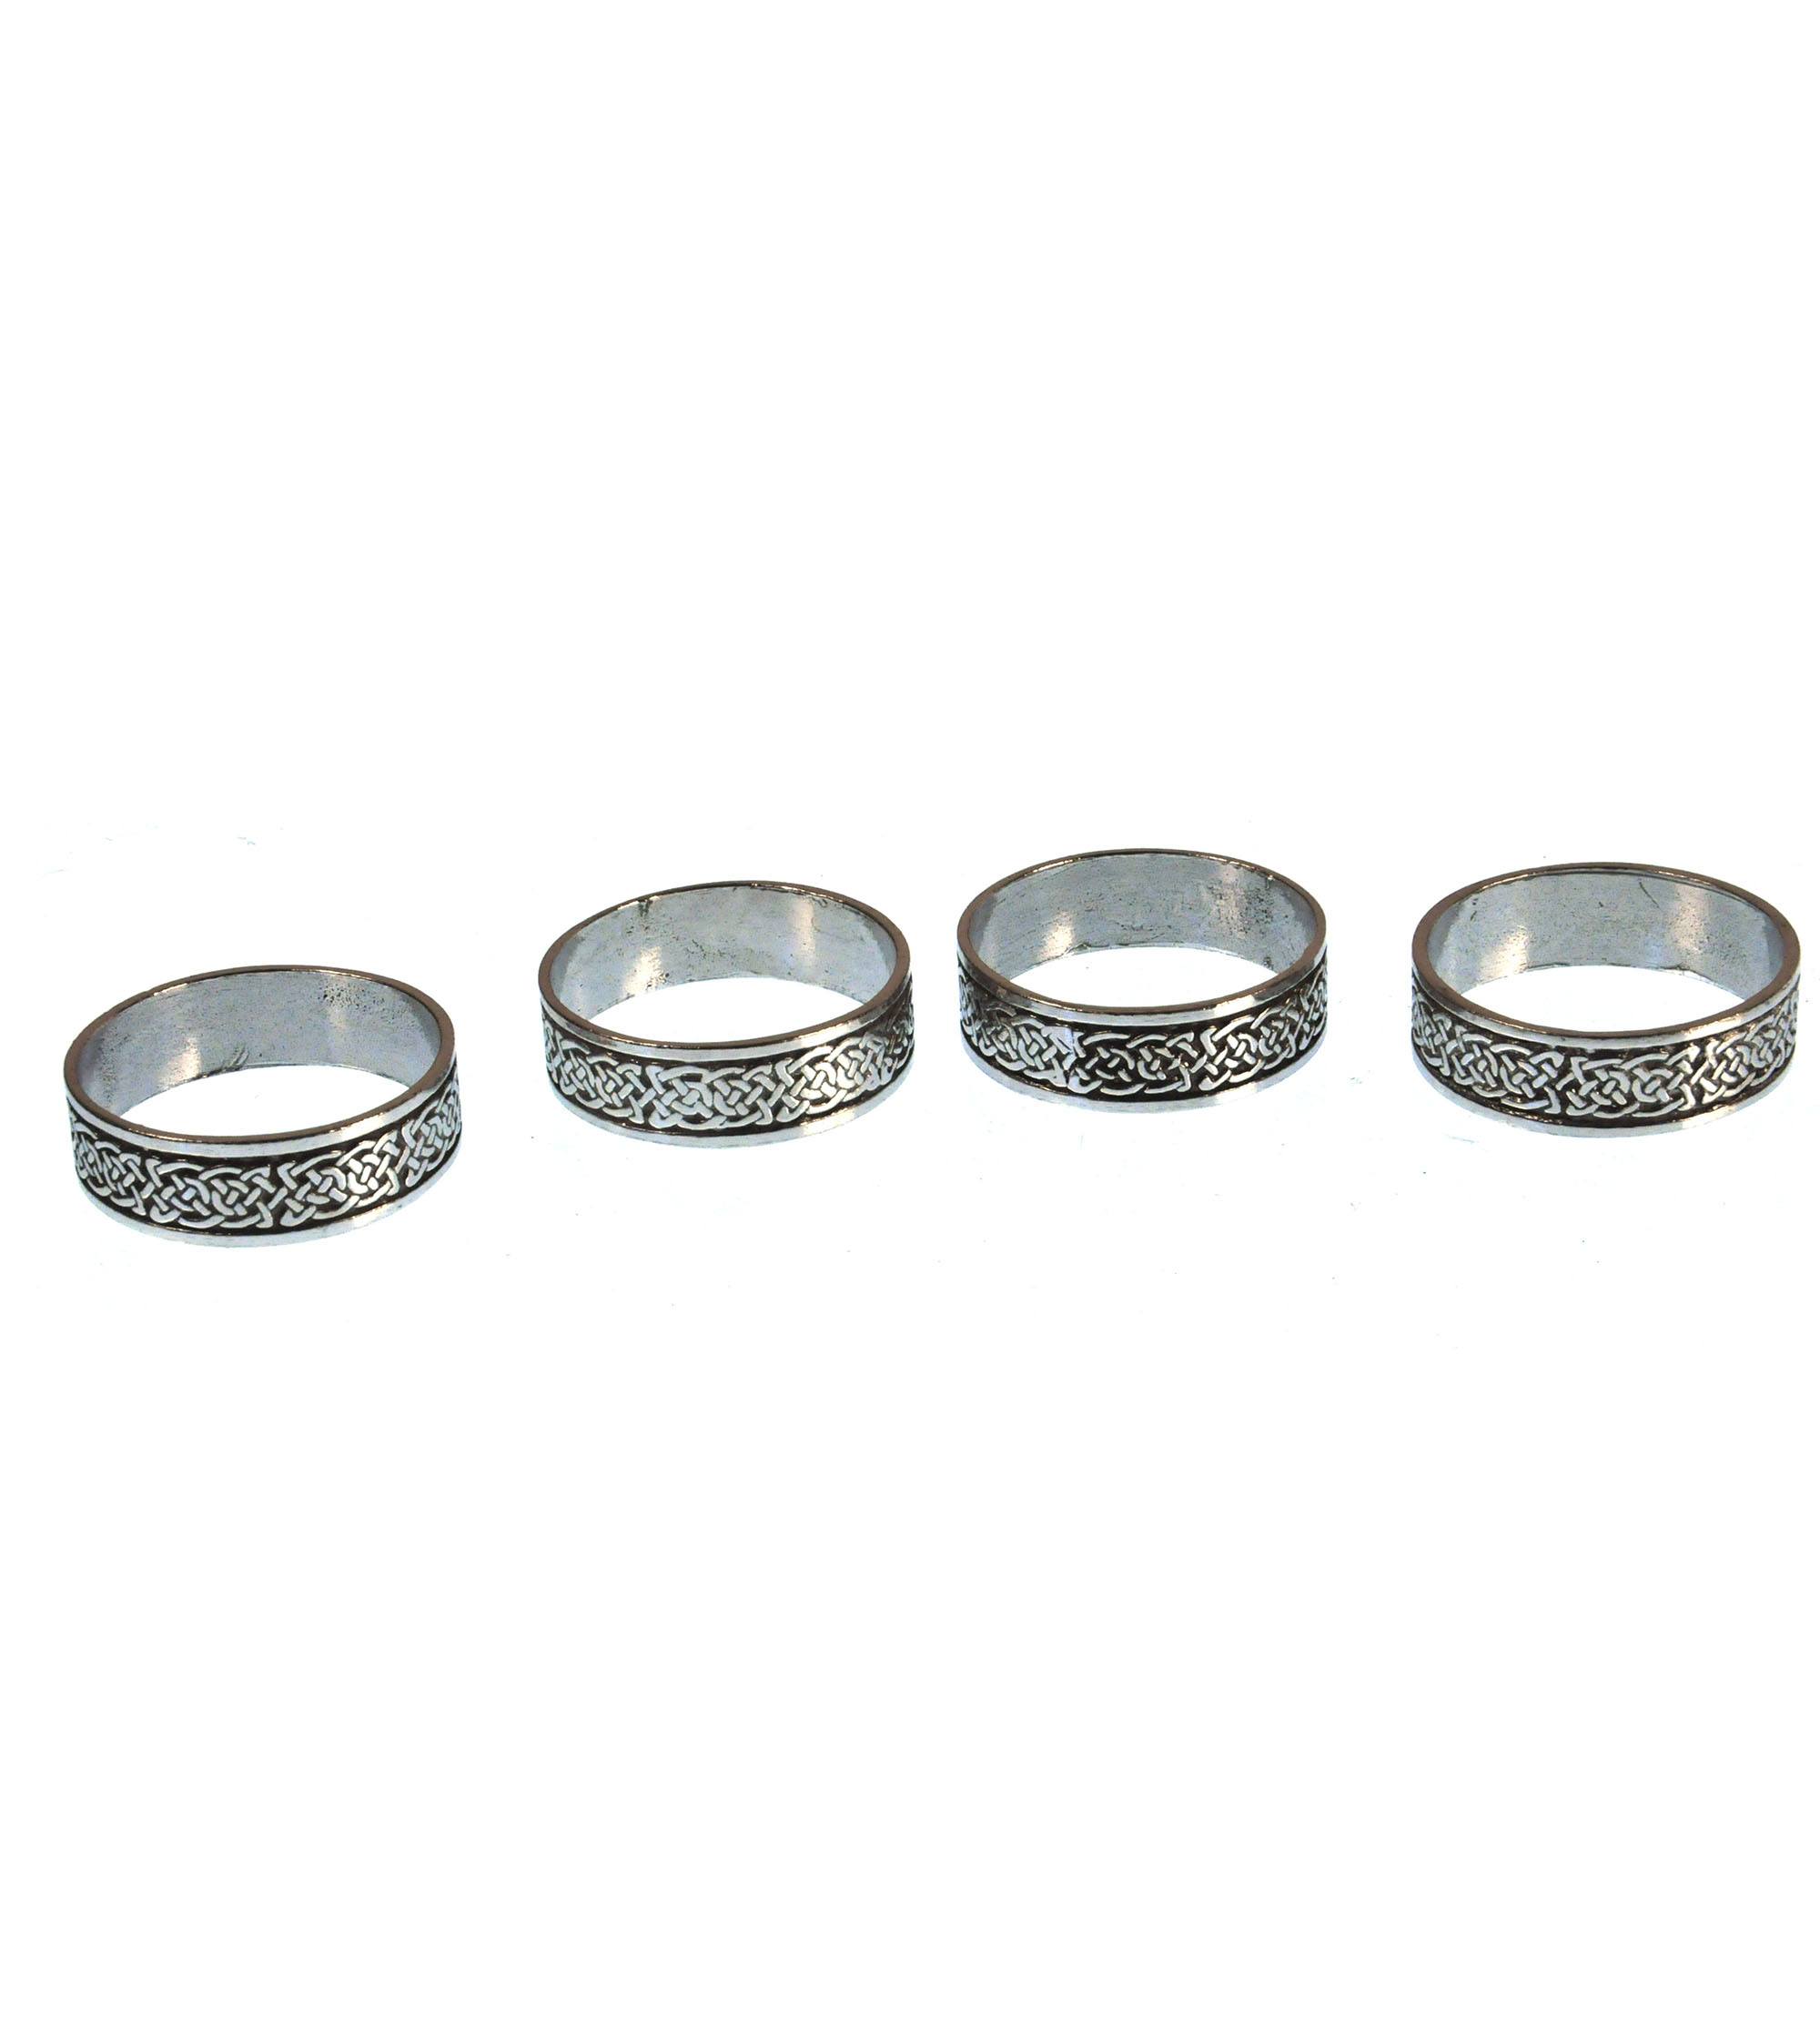 matching hers band rings set his and pewter brushed pin wedding women rustic s hammered men